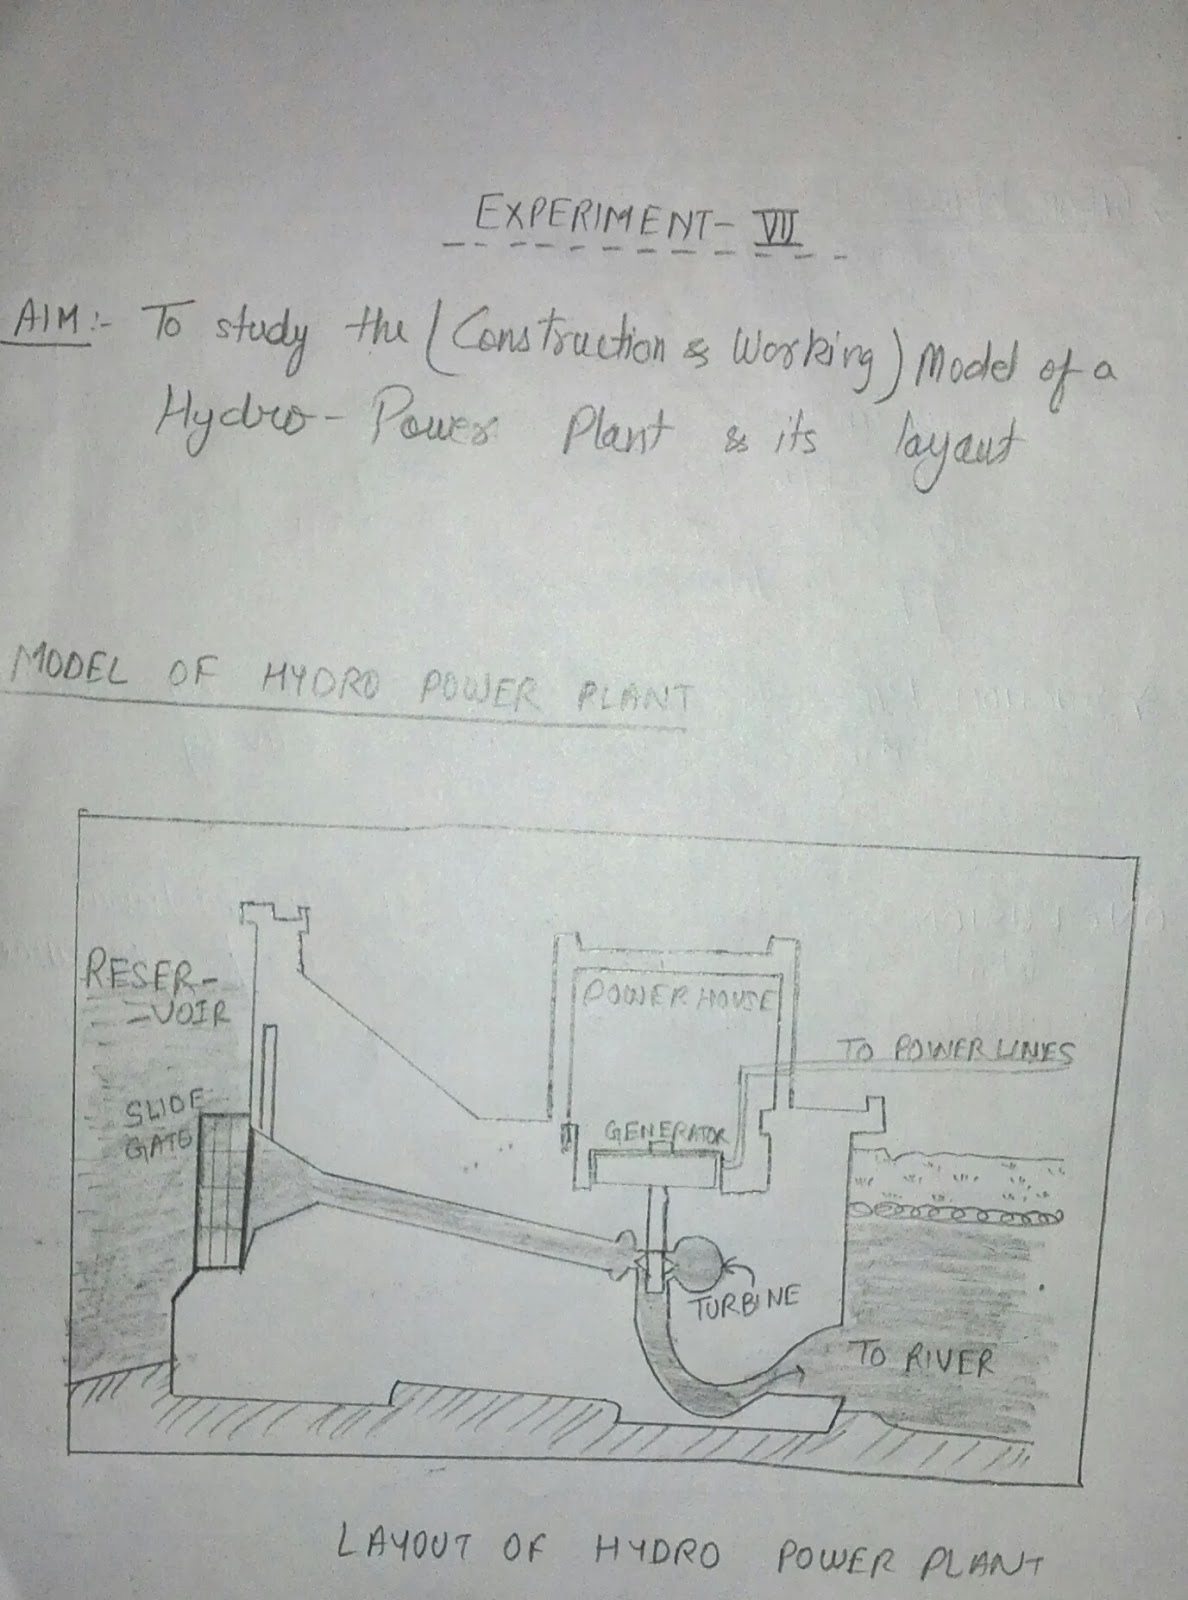 Mechanical Engineering 5th Semester Notes Hydro Power Plant Circuit Diagram To Study The Model Of Draw Its Layout